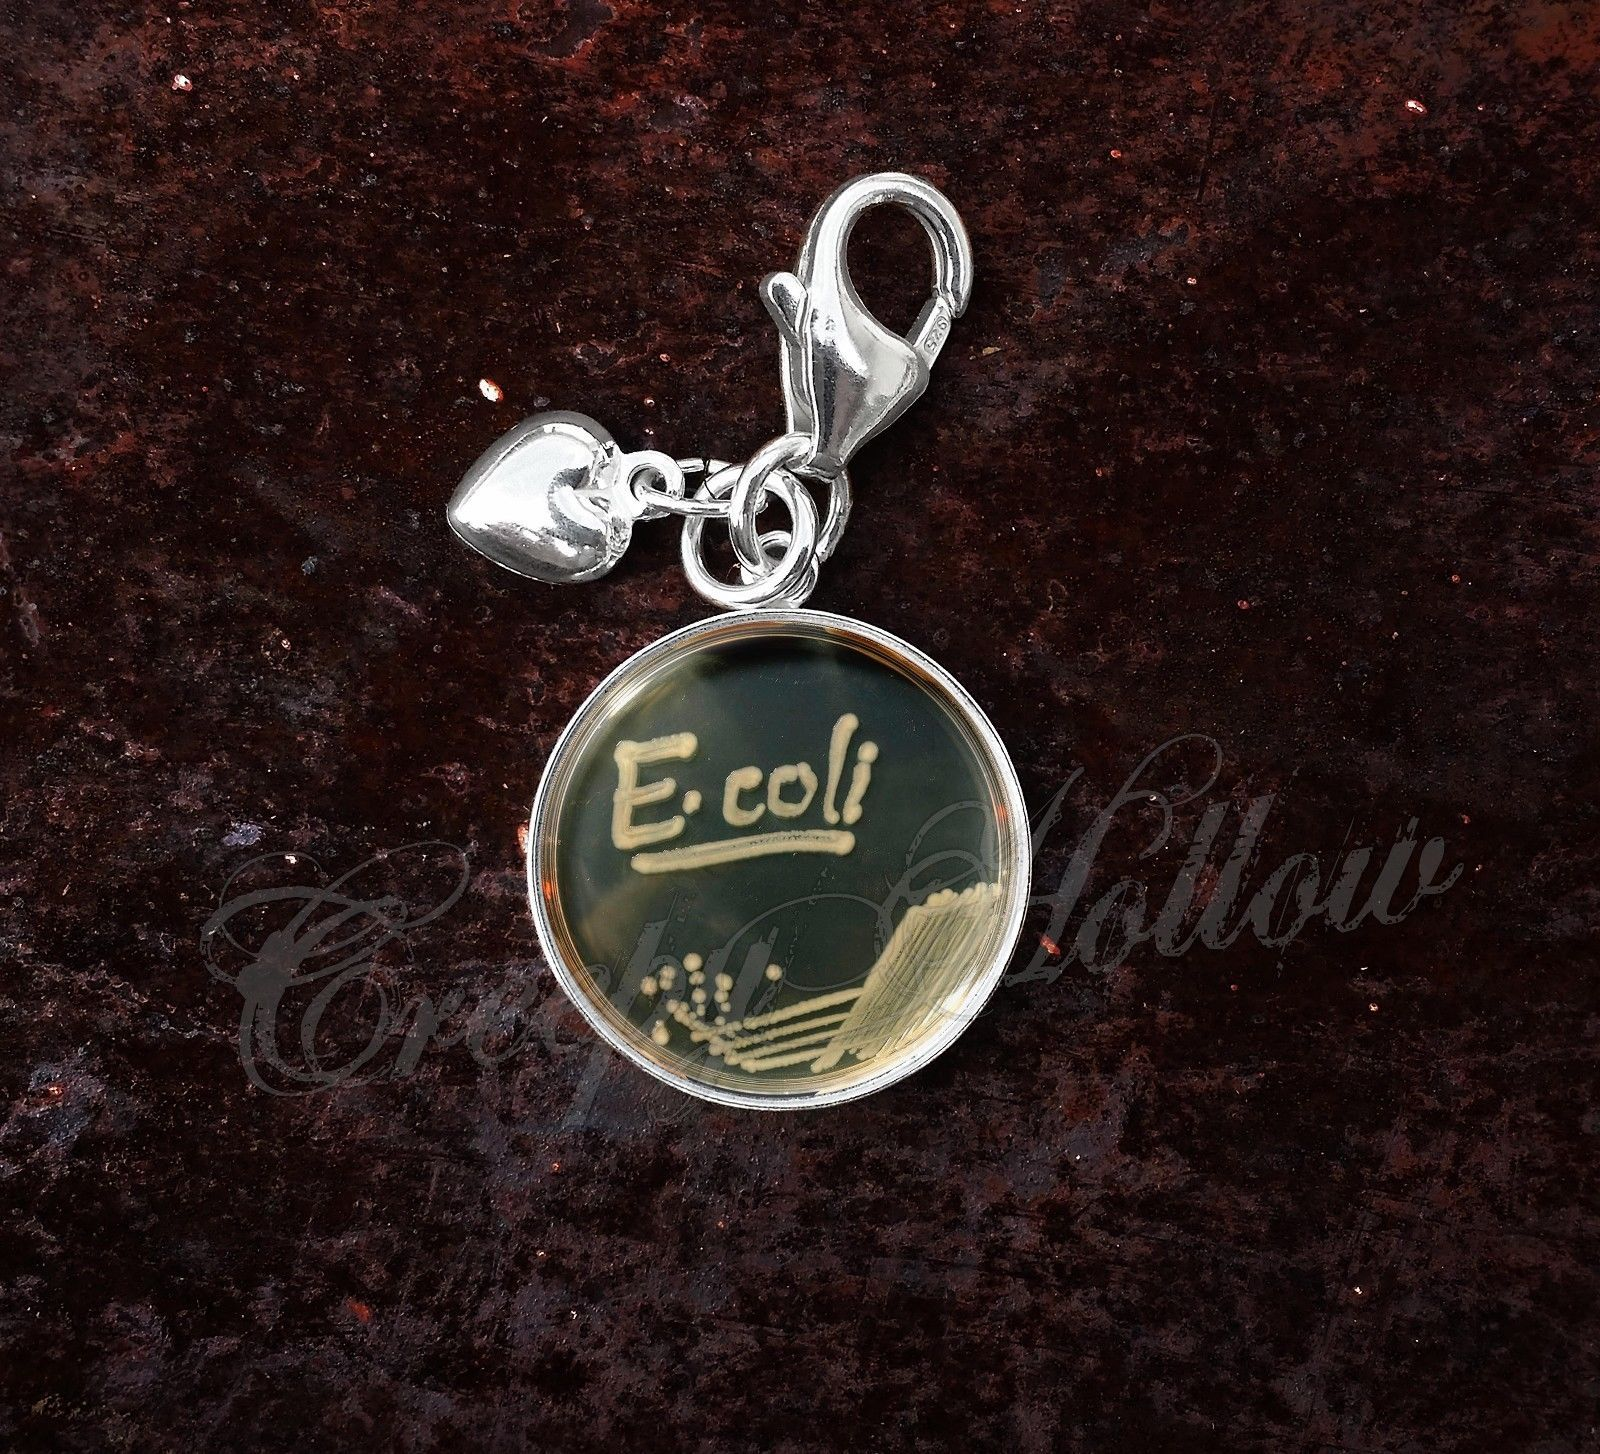 Primary image for 925 Sterling Silver Charm E. Coli Bacteria In Petri Dish Biology